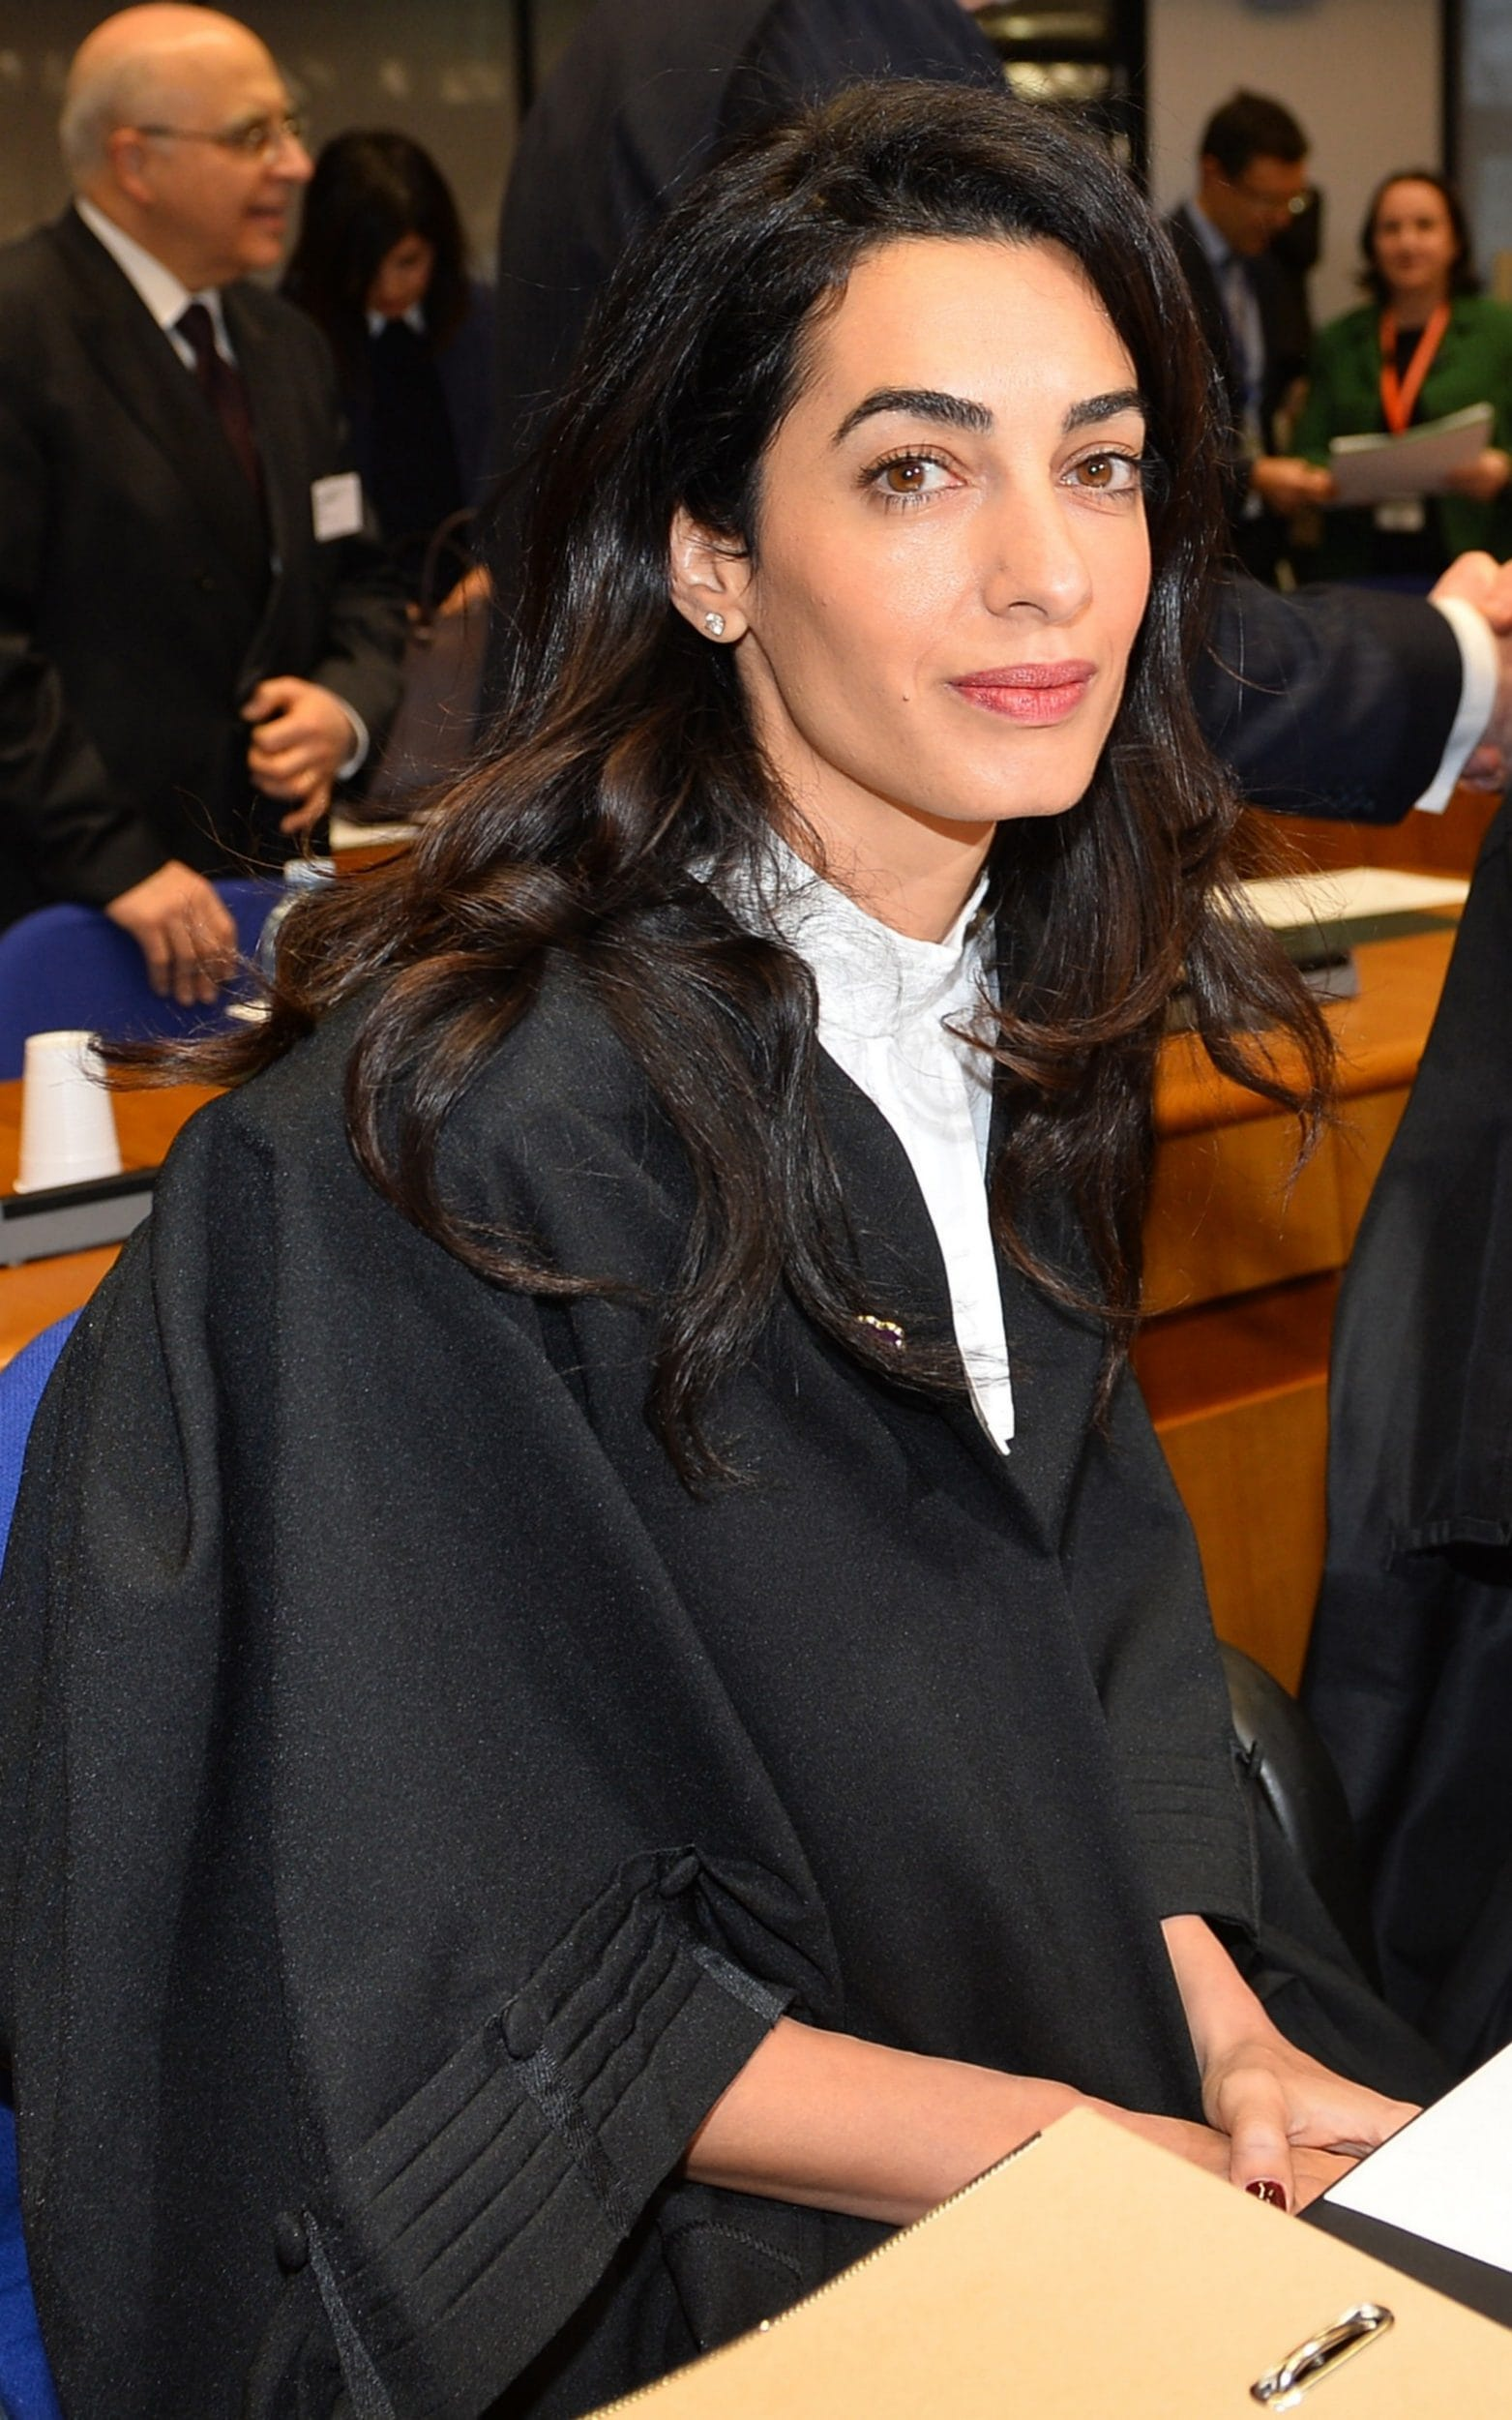 Amal Clooney in her barristers robes